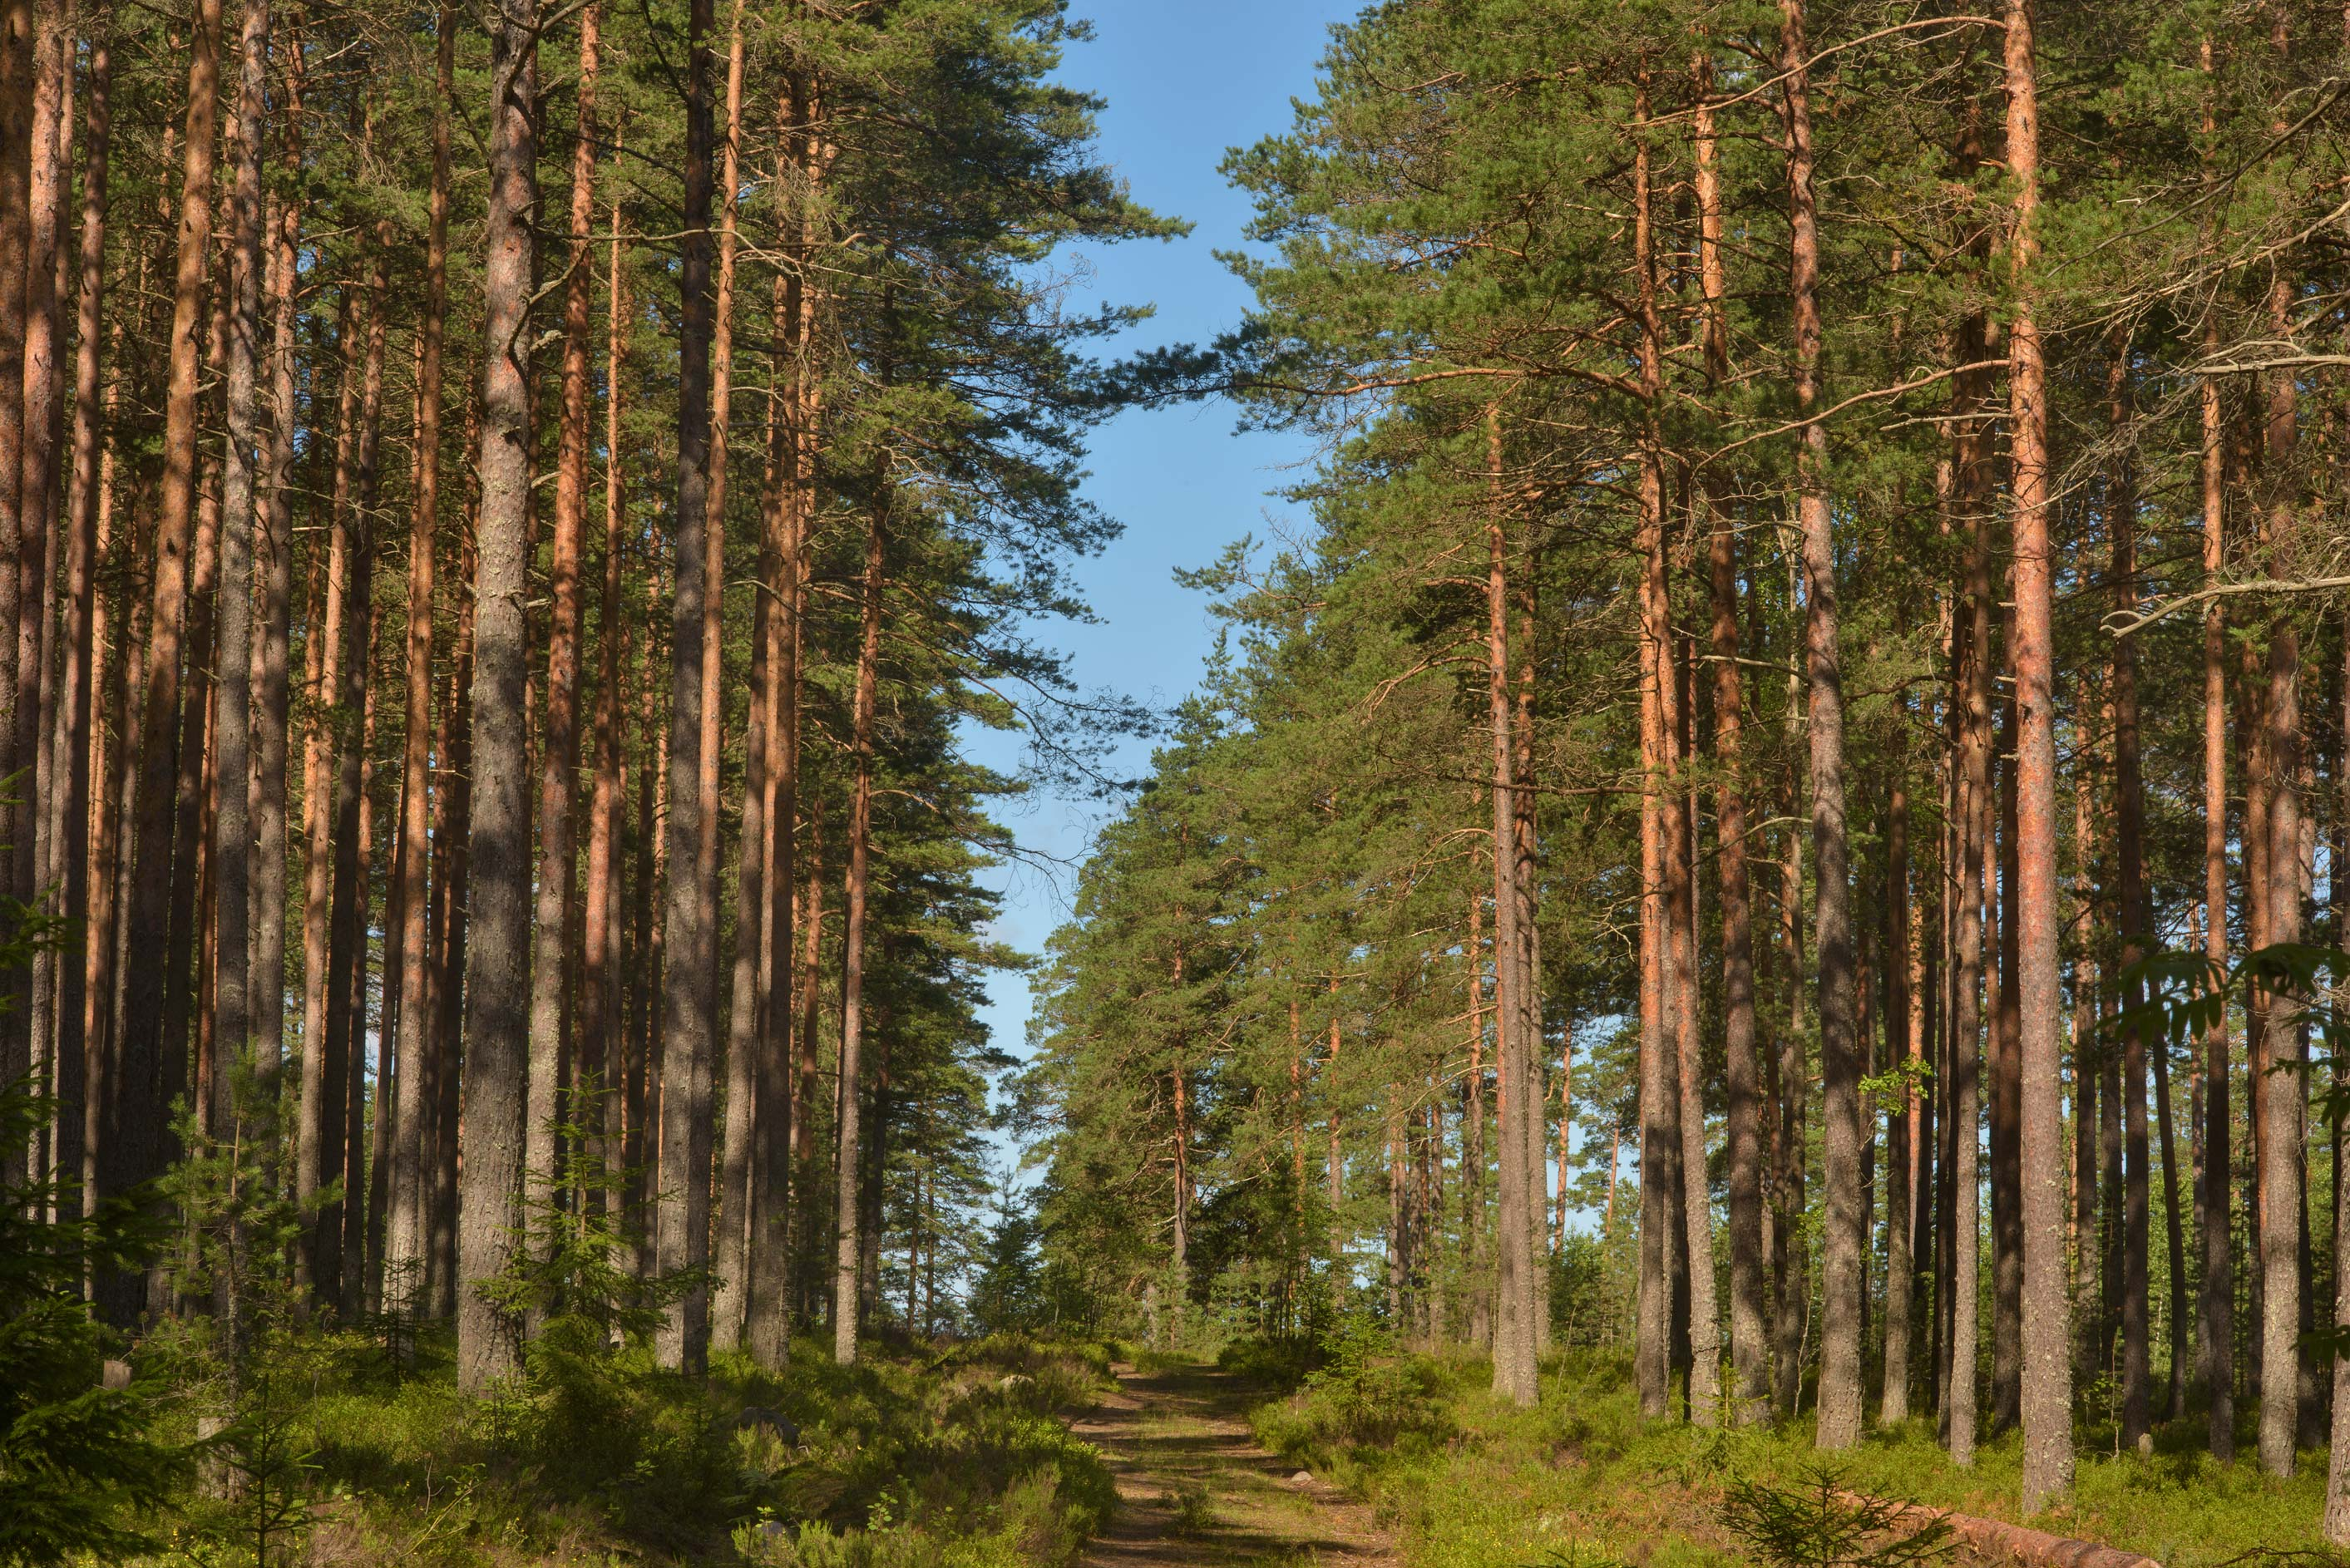 Cutting in a pine tree forest in Zakhodskoe, 50 miles north from St.Petersburg. Russia